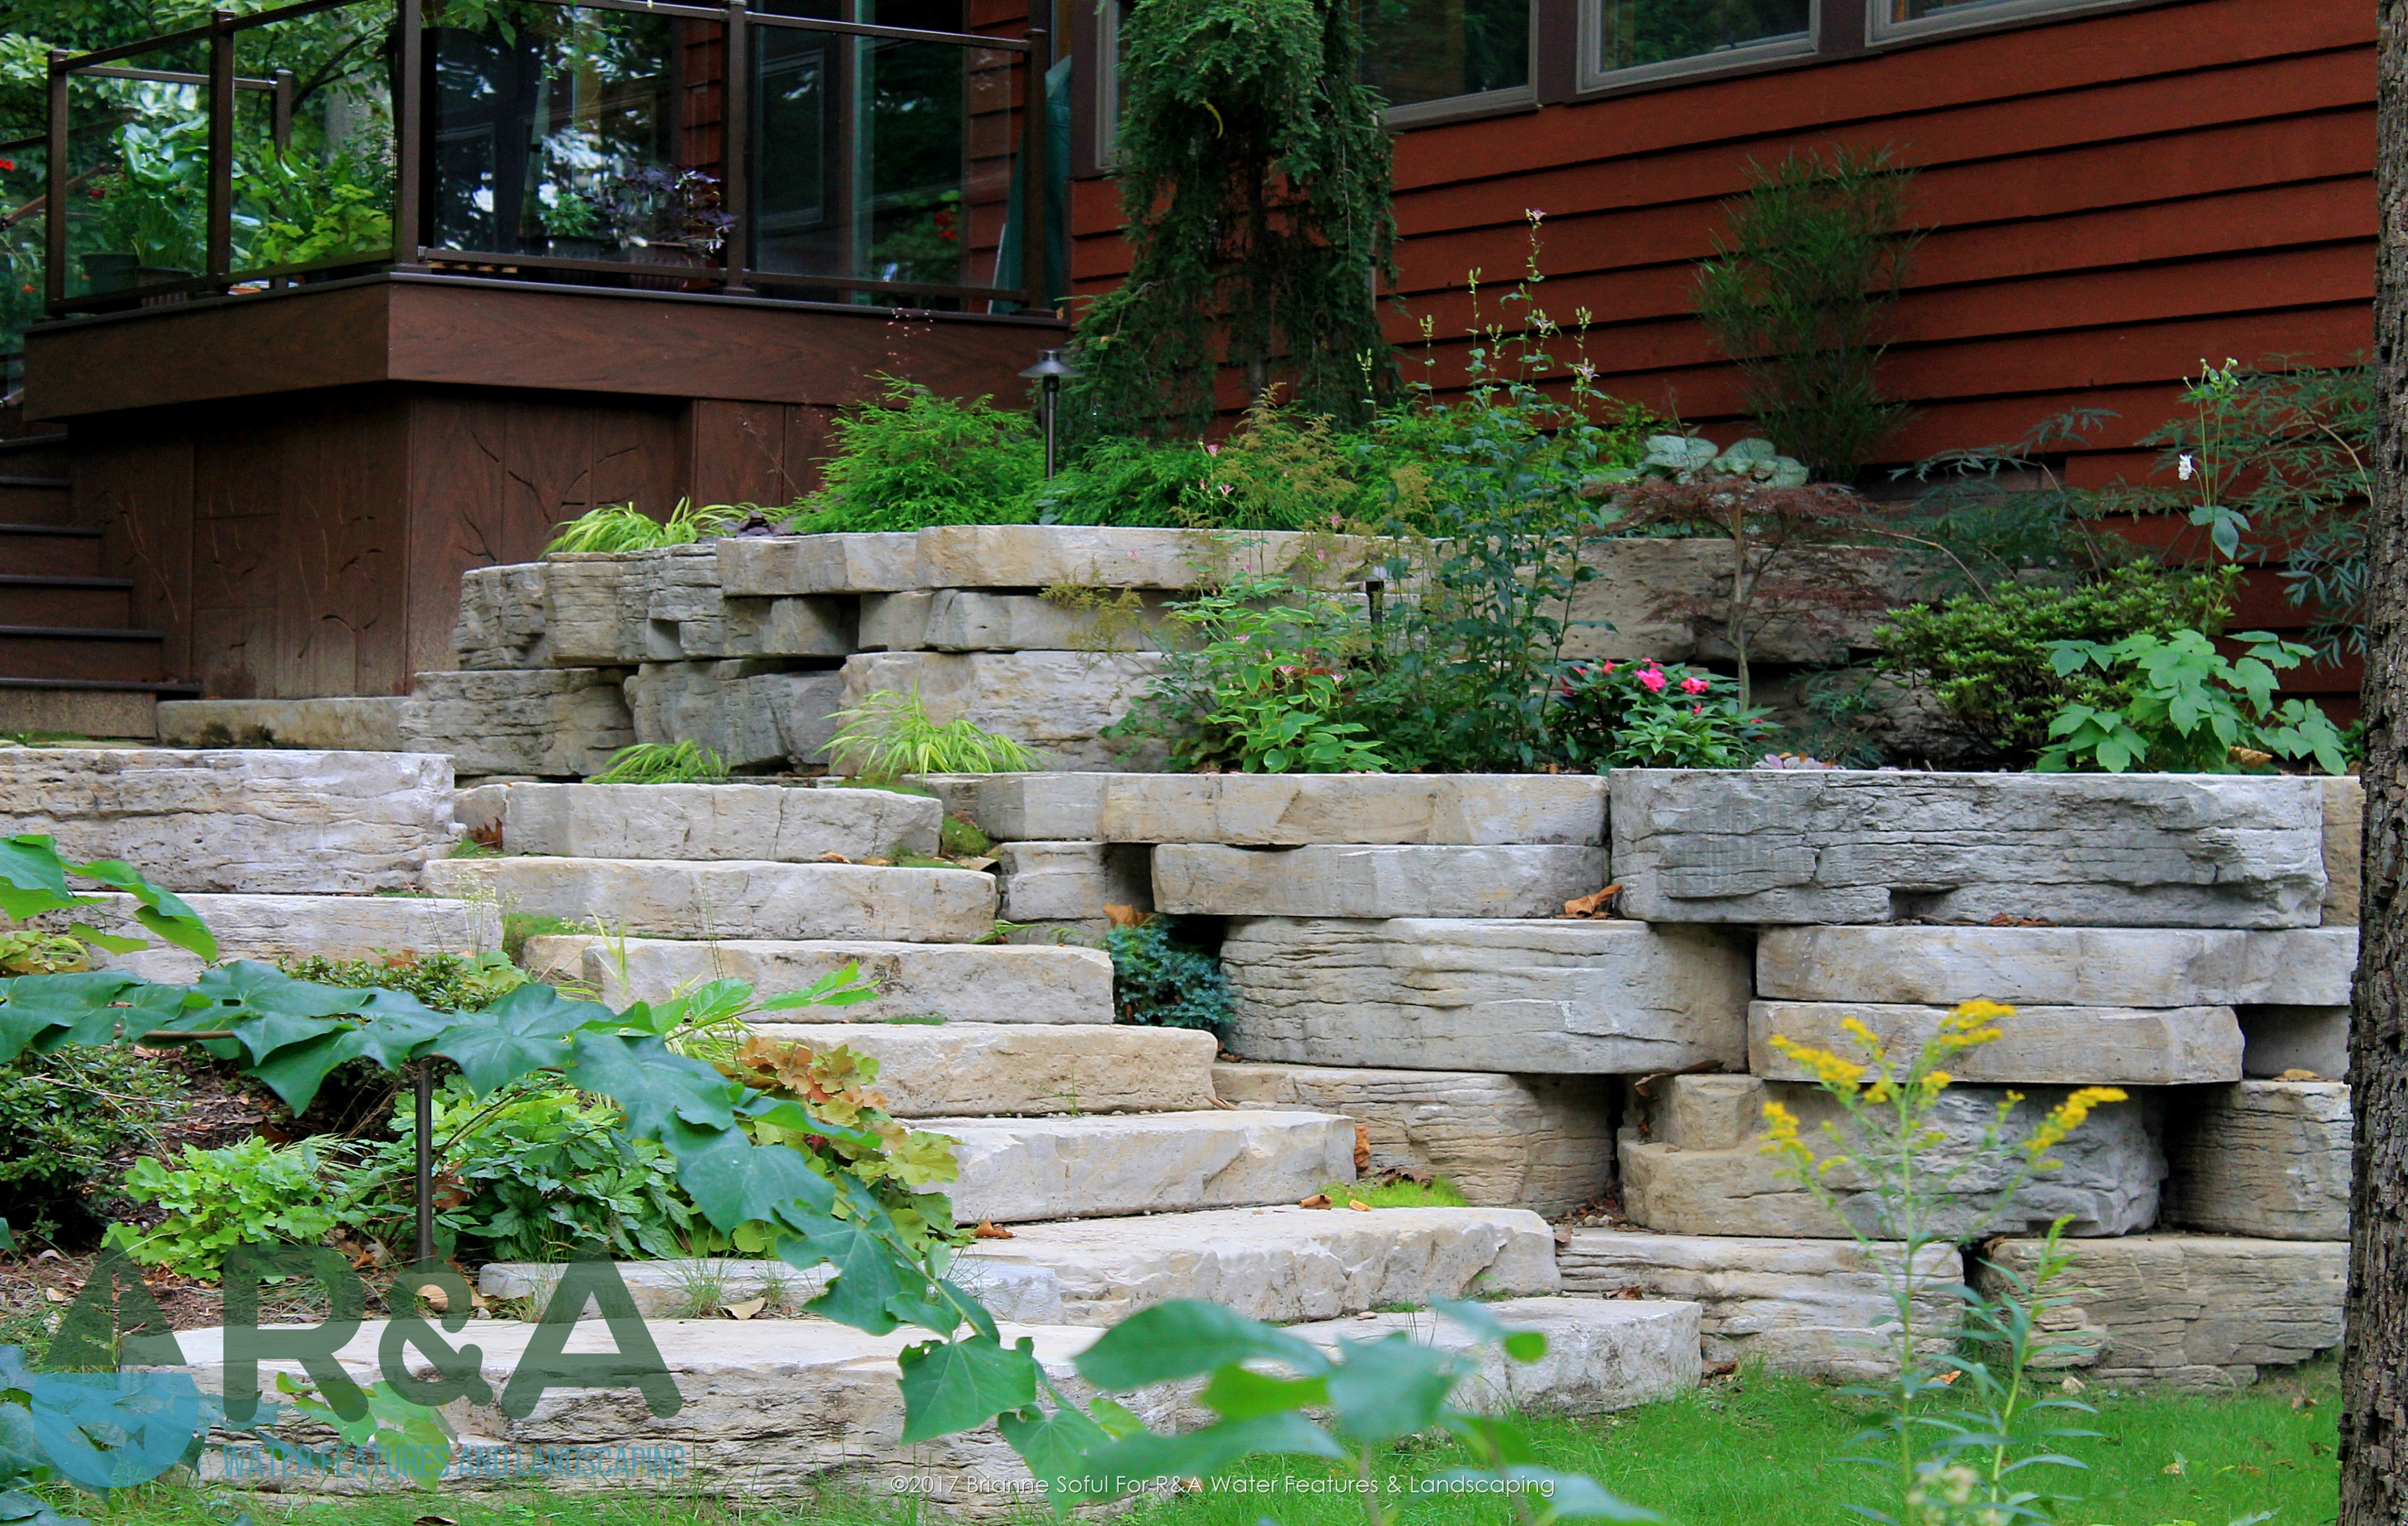 Eau Claire Landscaping Retaining Wall Steps Deck (13)